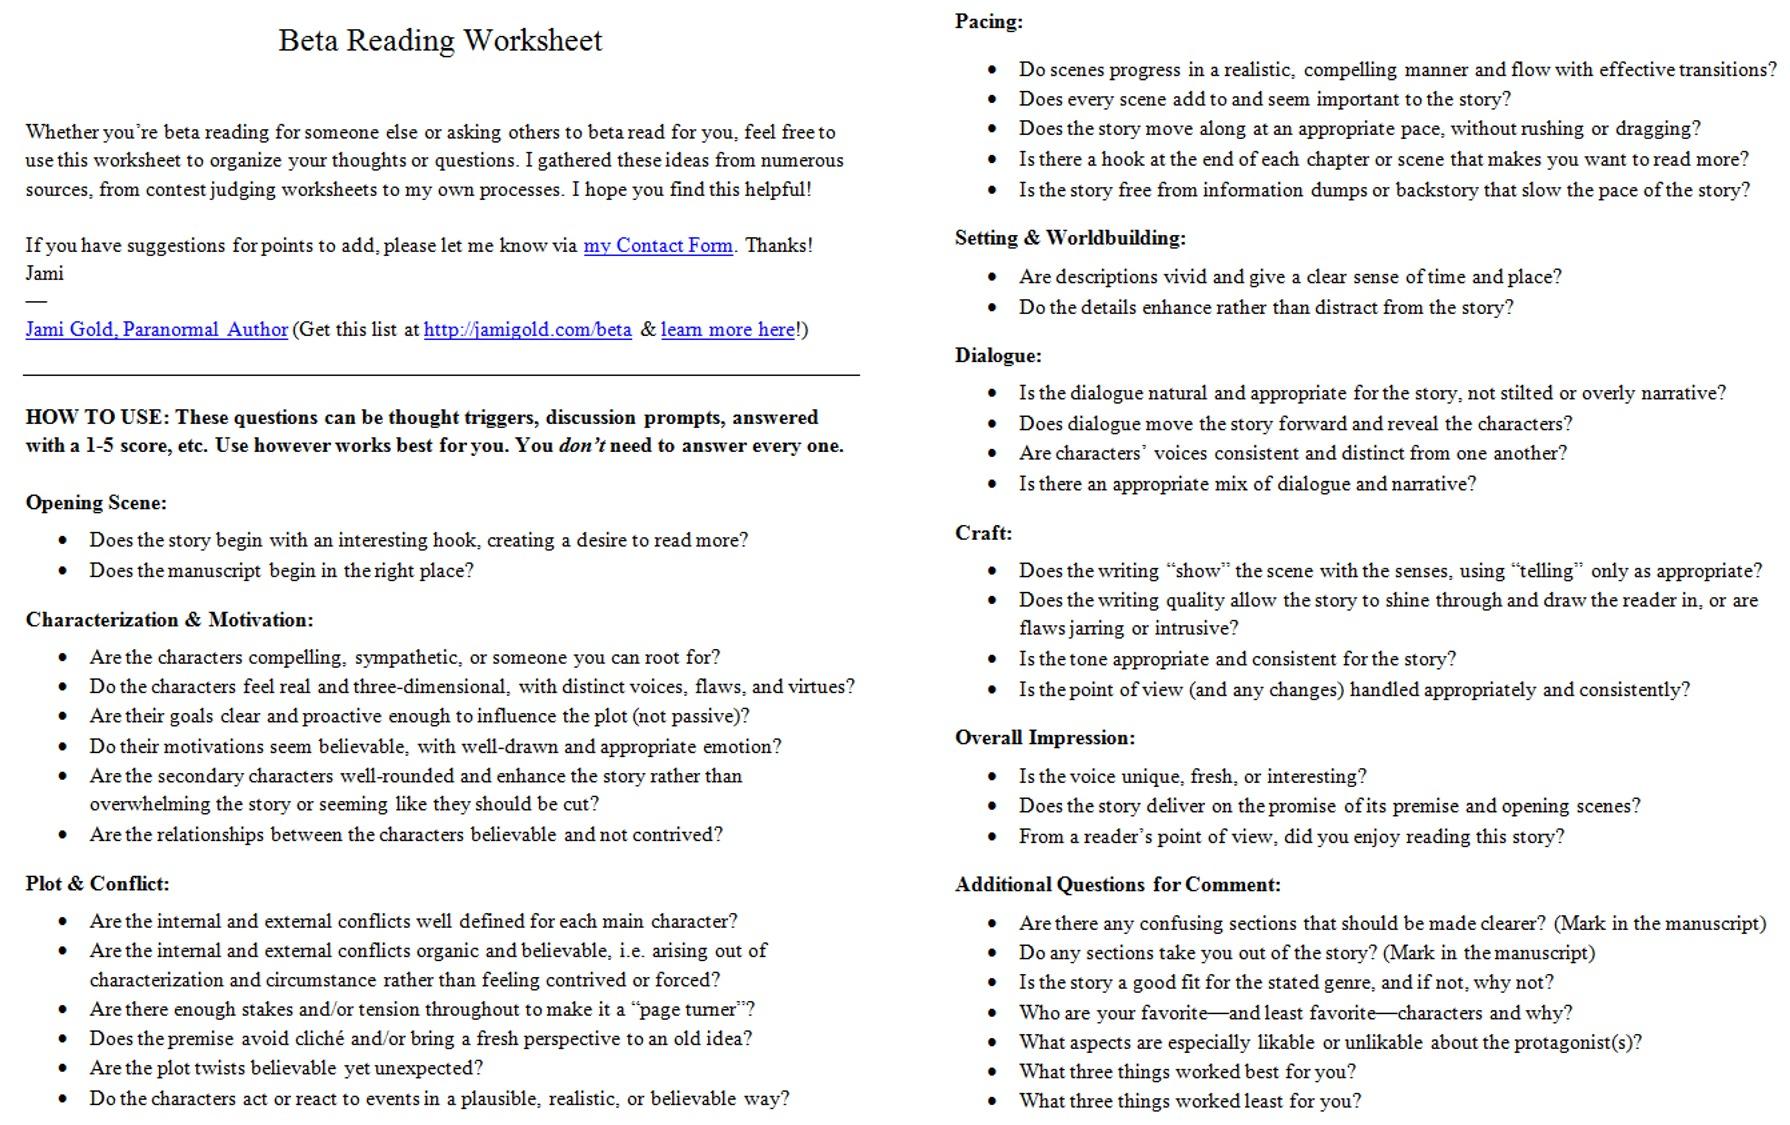 Proatmealus  Wonderful Worksheets For Writers  Jami Gold Paranormal Author With Extraordinary Screen Shot Of The Twopage Beta Reading Worksheet With Endearing Que Hora Es Worksheet Also Measuring Mass Worksheet In Addition The Iliad Worksheets And Using Adverbs Worksheet As Well As Tricky Words Worksheet Additionally Perspective Taking Worksheets From Jamigoldcom With Proatmealus  Extraordinary Worksheets For Writers  Jami Gold Paranormal Author With Endearing Screen Shot Of The Twopage Beta Reading Worksheet And Wonderful Que Hora Es Worksheet Also Measuring Mass Worksheet In Addition The Iliad Worksheets From Jamigoldcom